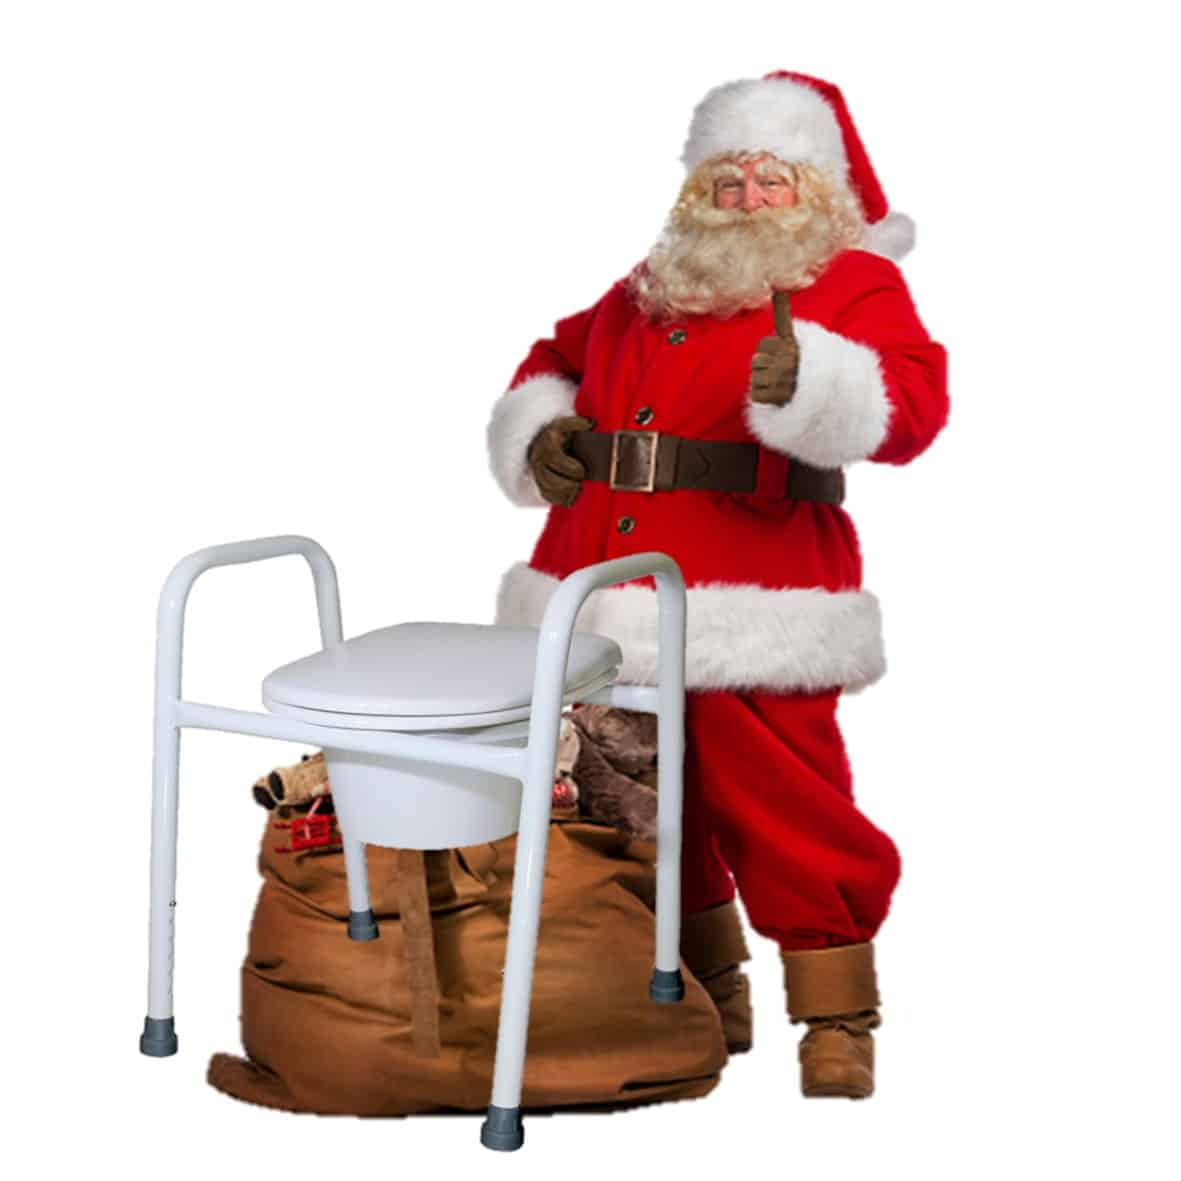 Willaid santa